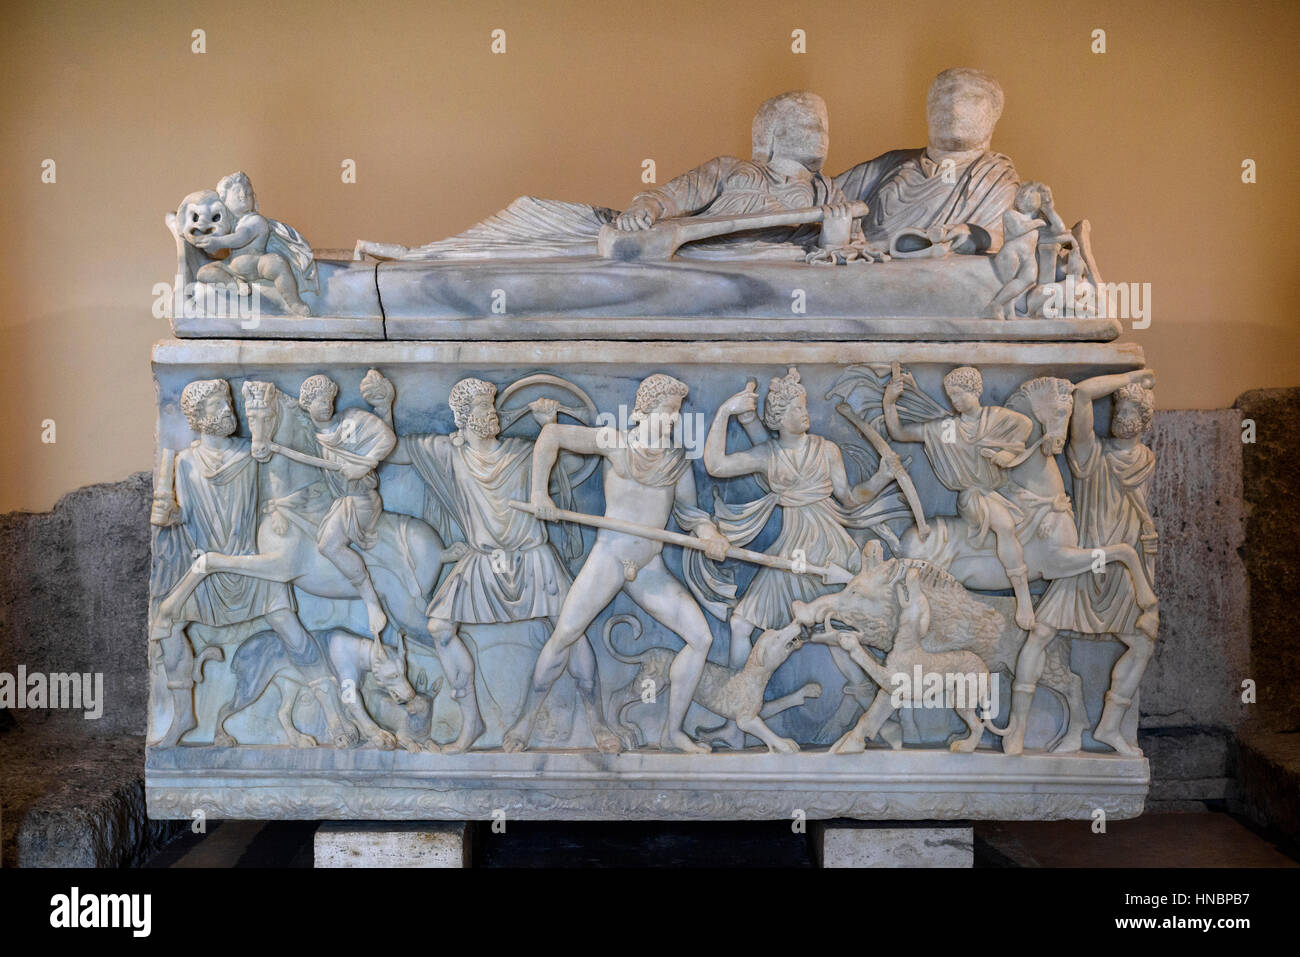 Rome. Italy. Roman sarcophagus depicting the myth of Meleager and the hunt for the Calydonian boar, 3rd century - Stock Image